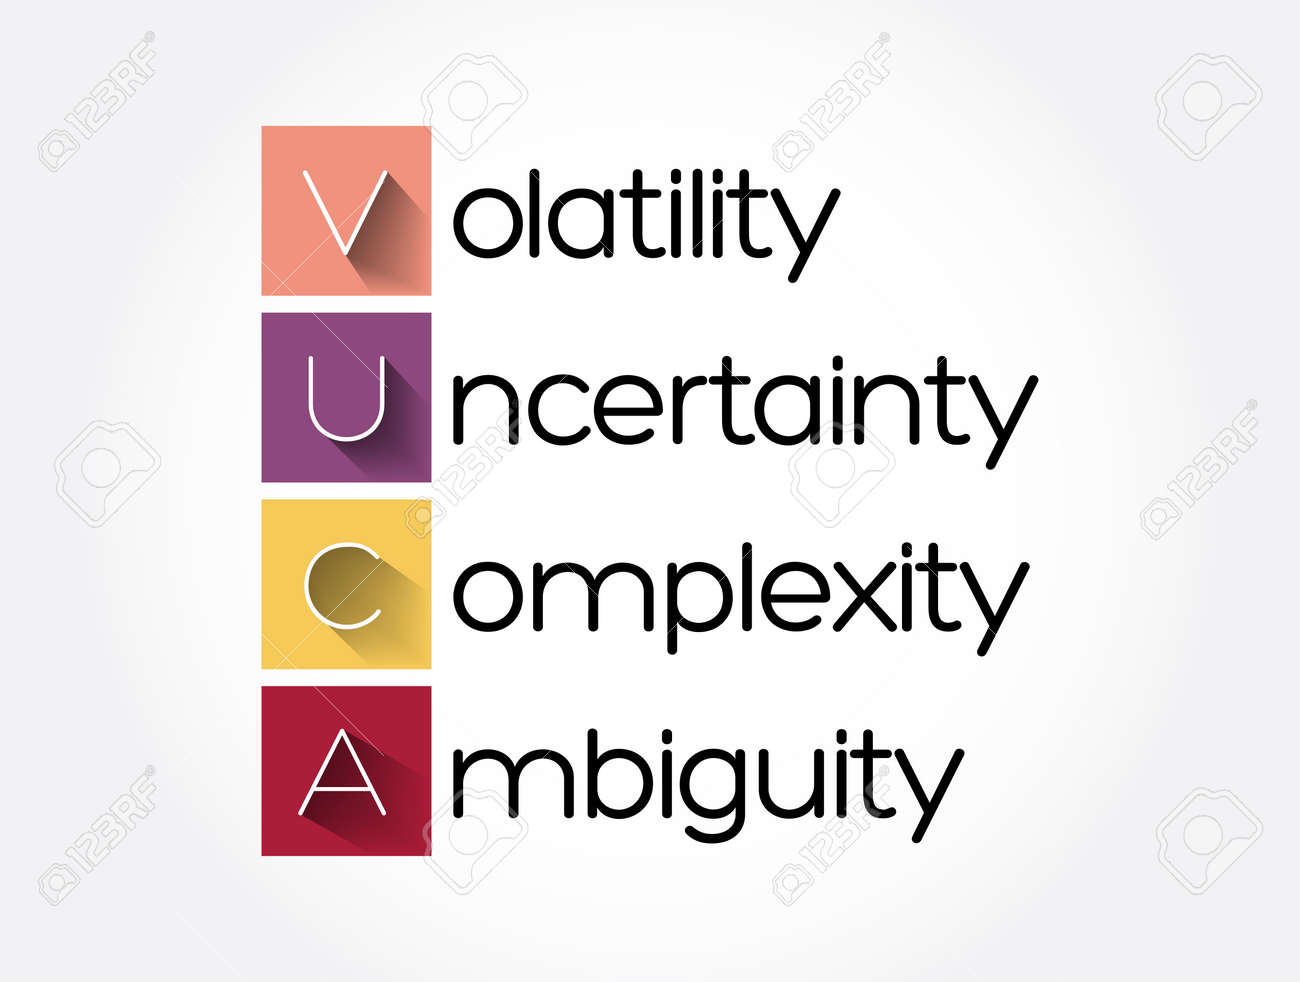 VUCA - Volatility, Uncertainty, Complexity, Ambiguity acronym, business concept background - 169007540